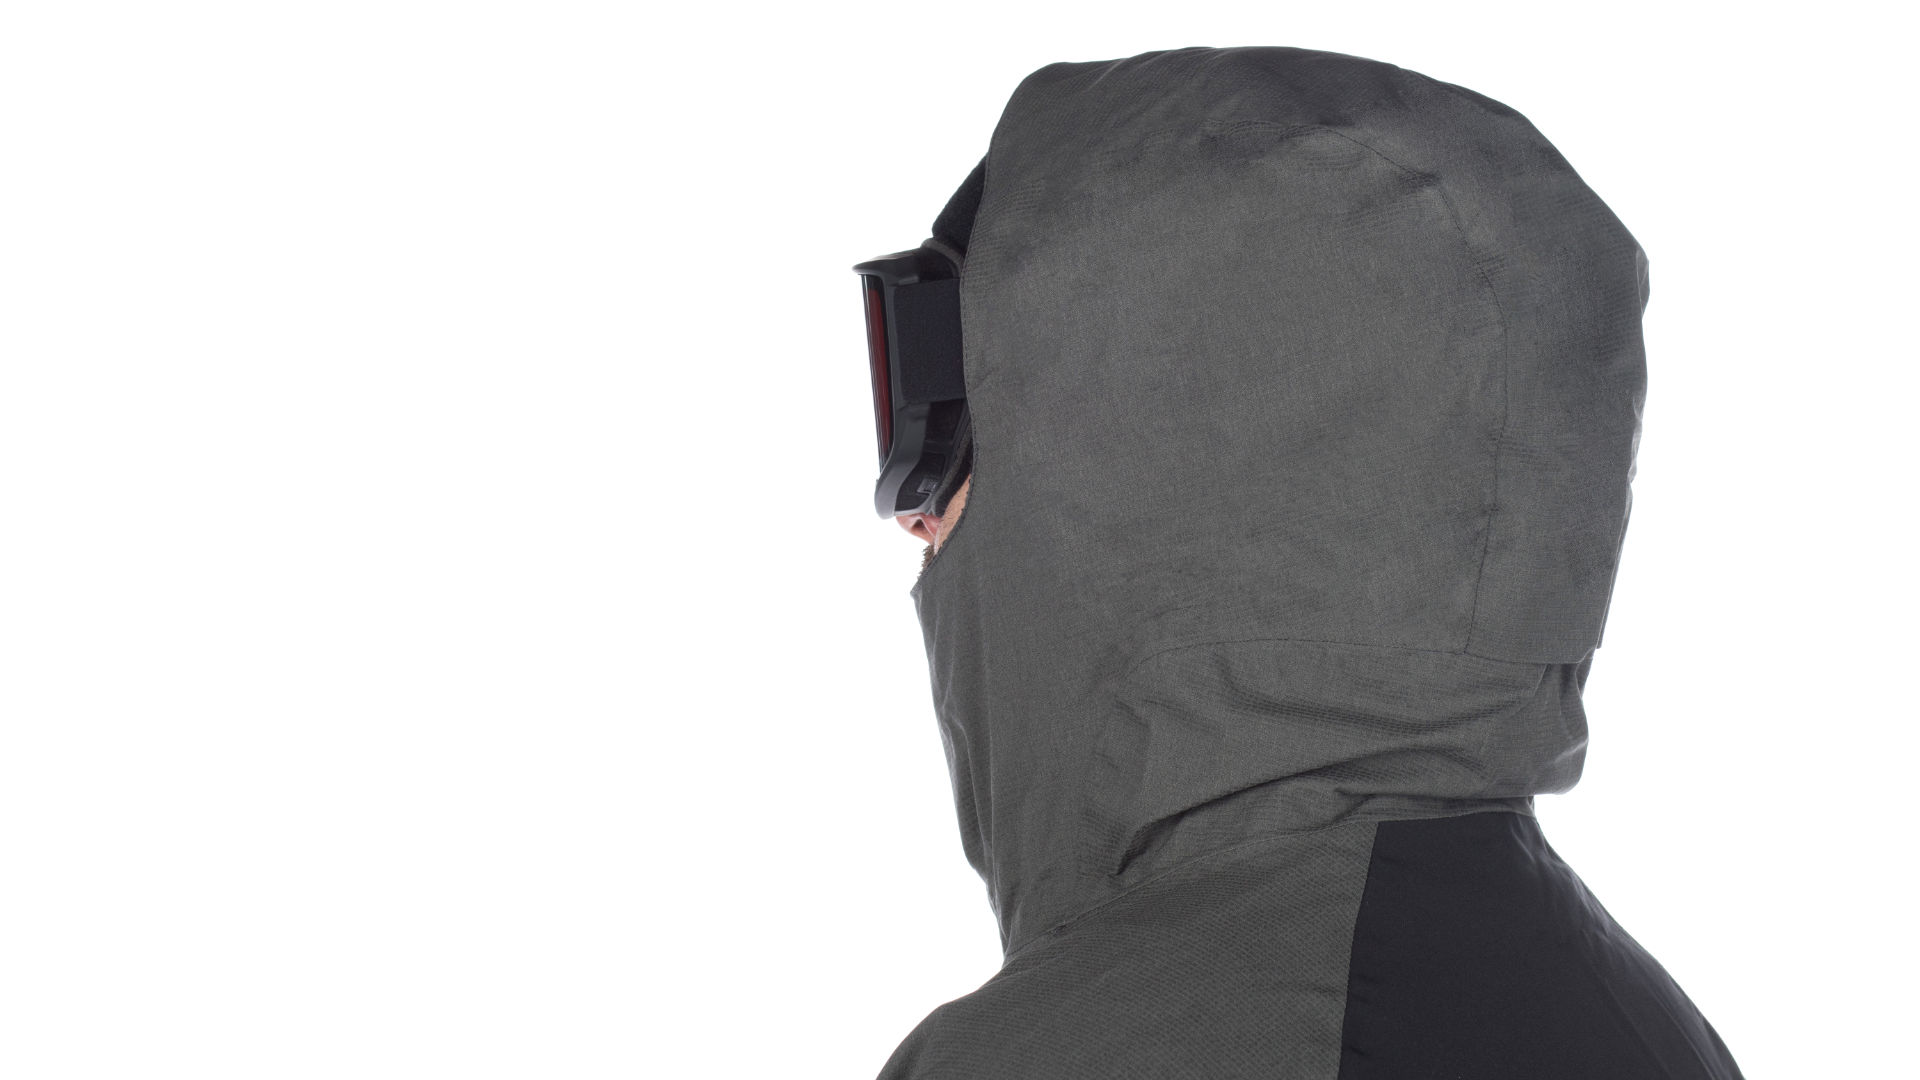 The hood of a snowboard jacket